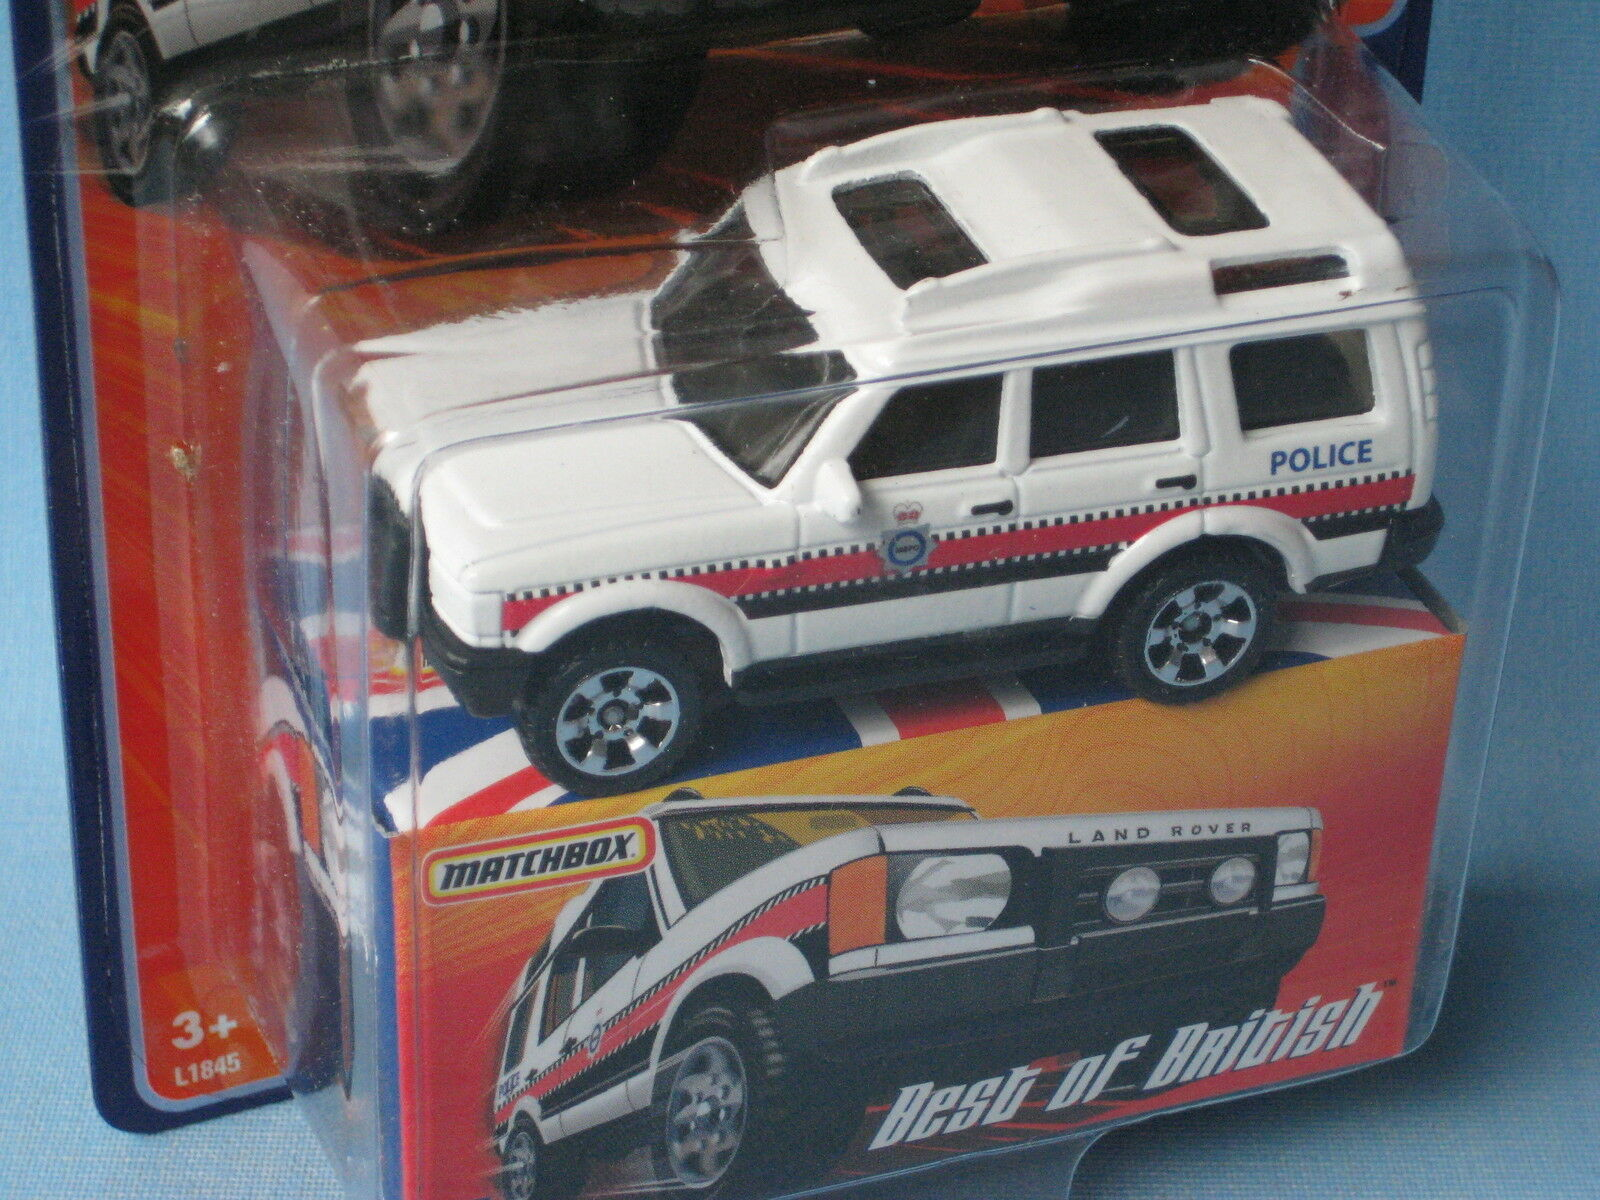 Matchbox Land Rover Discovery Met   Essex Police Toy Model Car 70mm Long